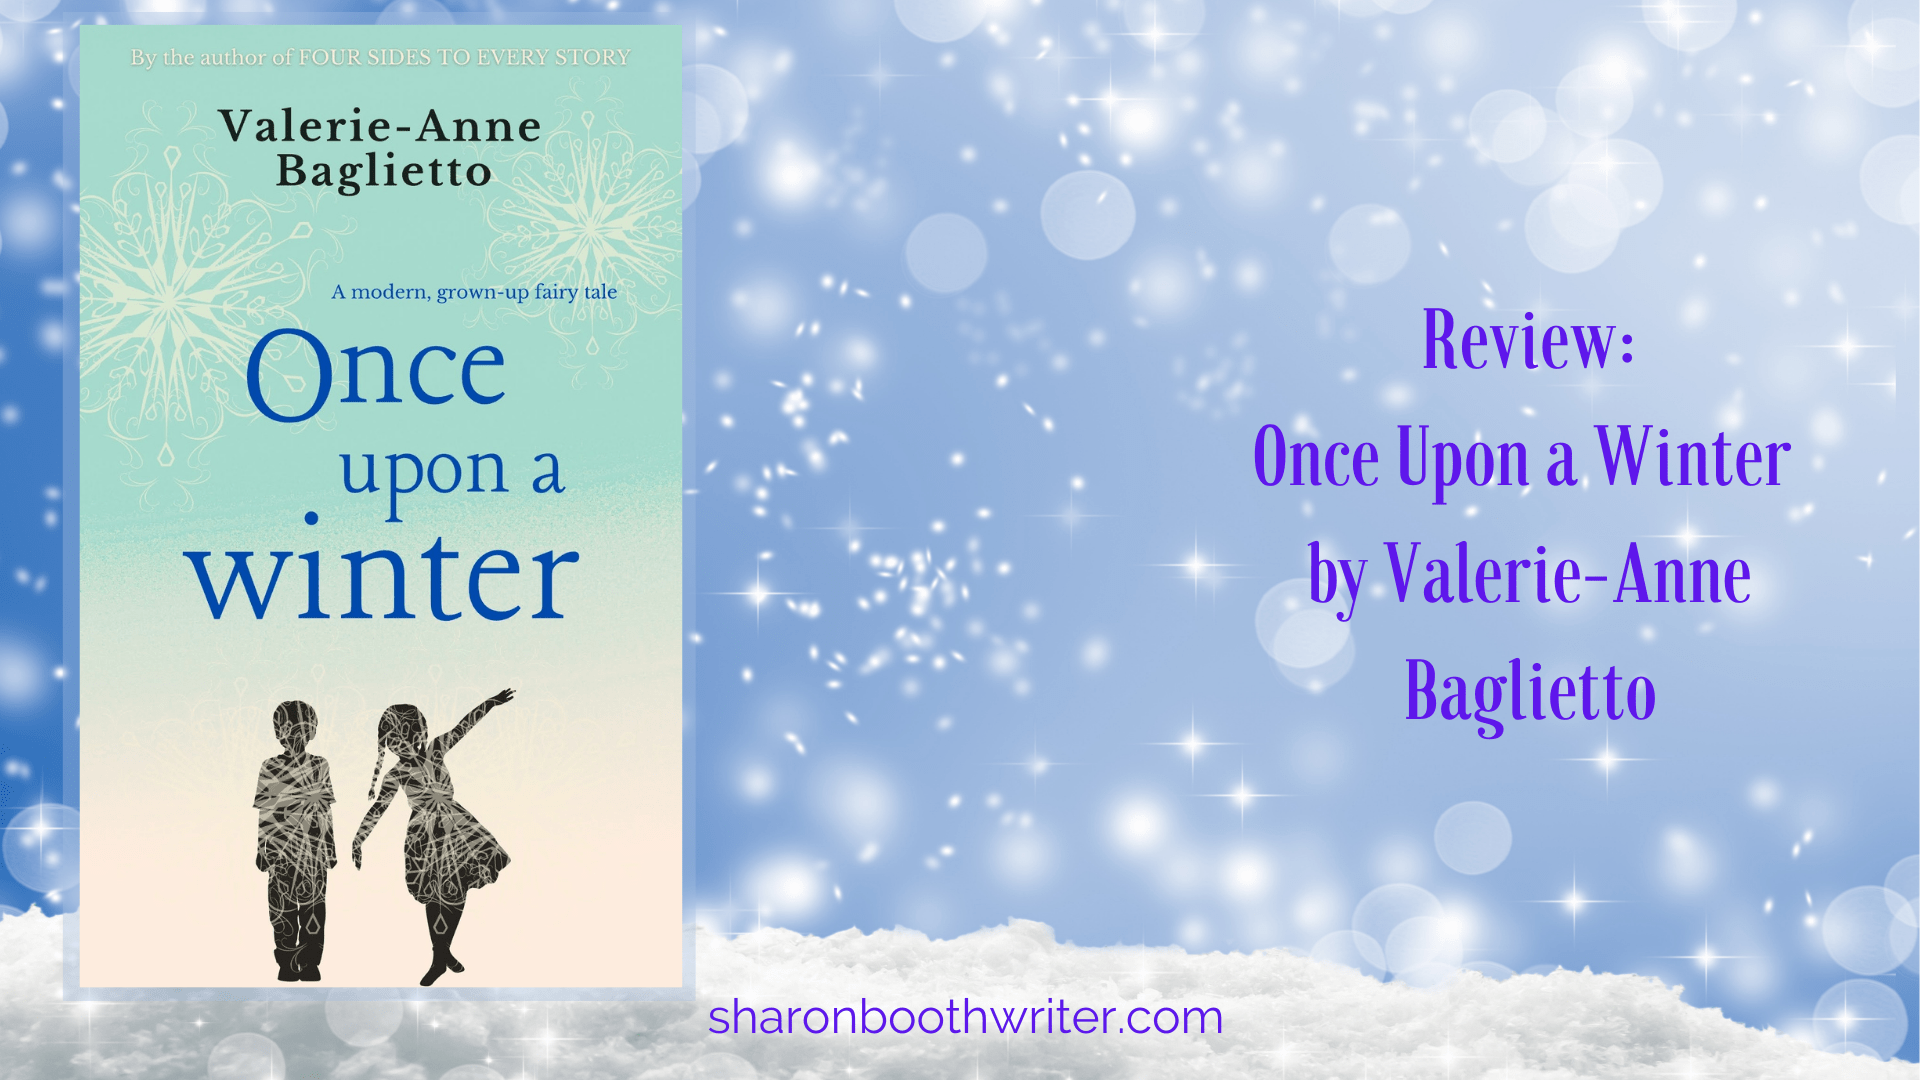 Once Upon a Winter by Valerie-Anne Baglietto